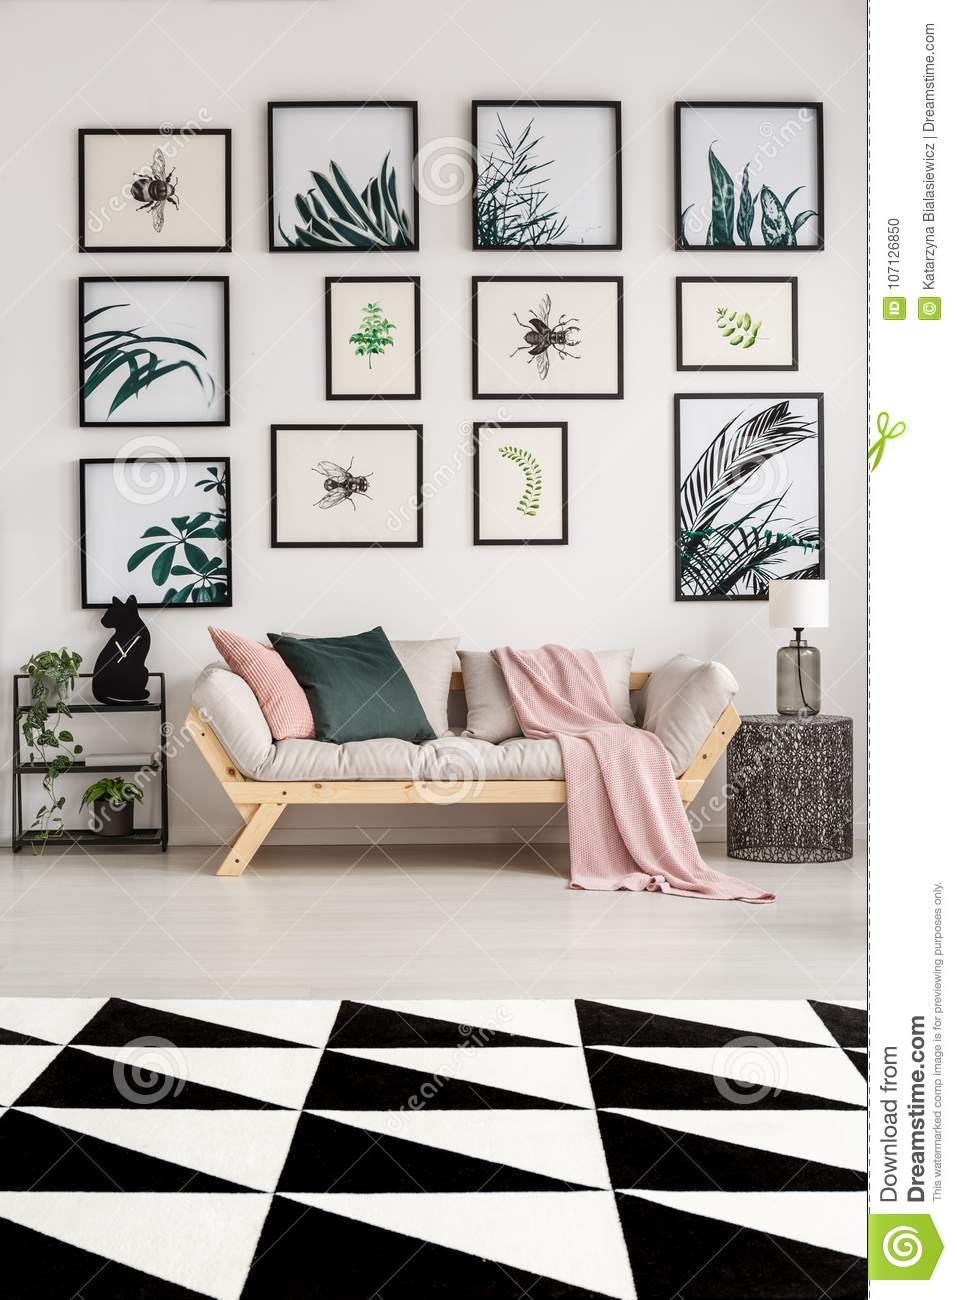 Modern Living Room With Posters Stock Photo - Image of industrial ...